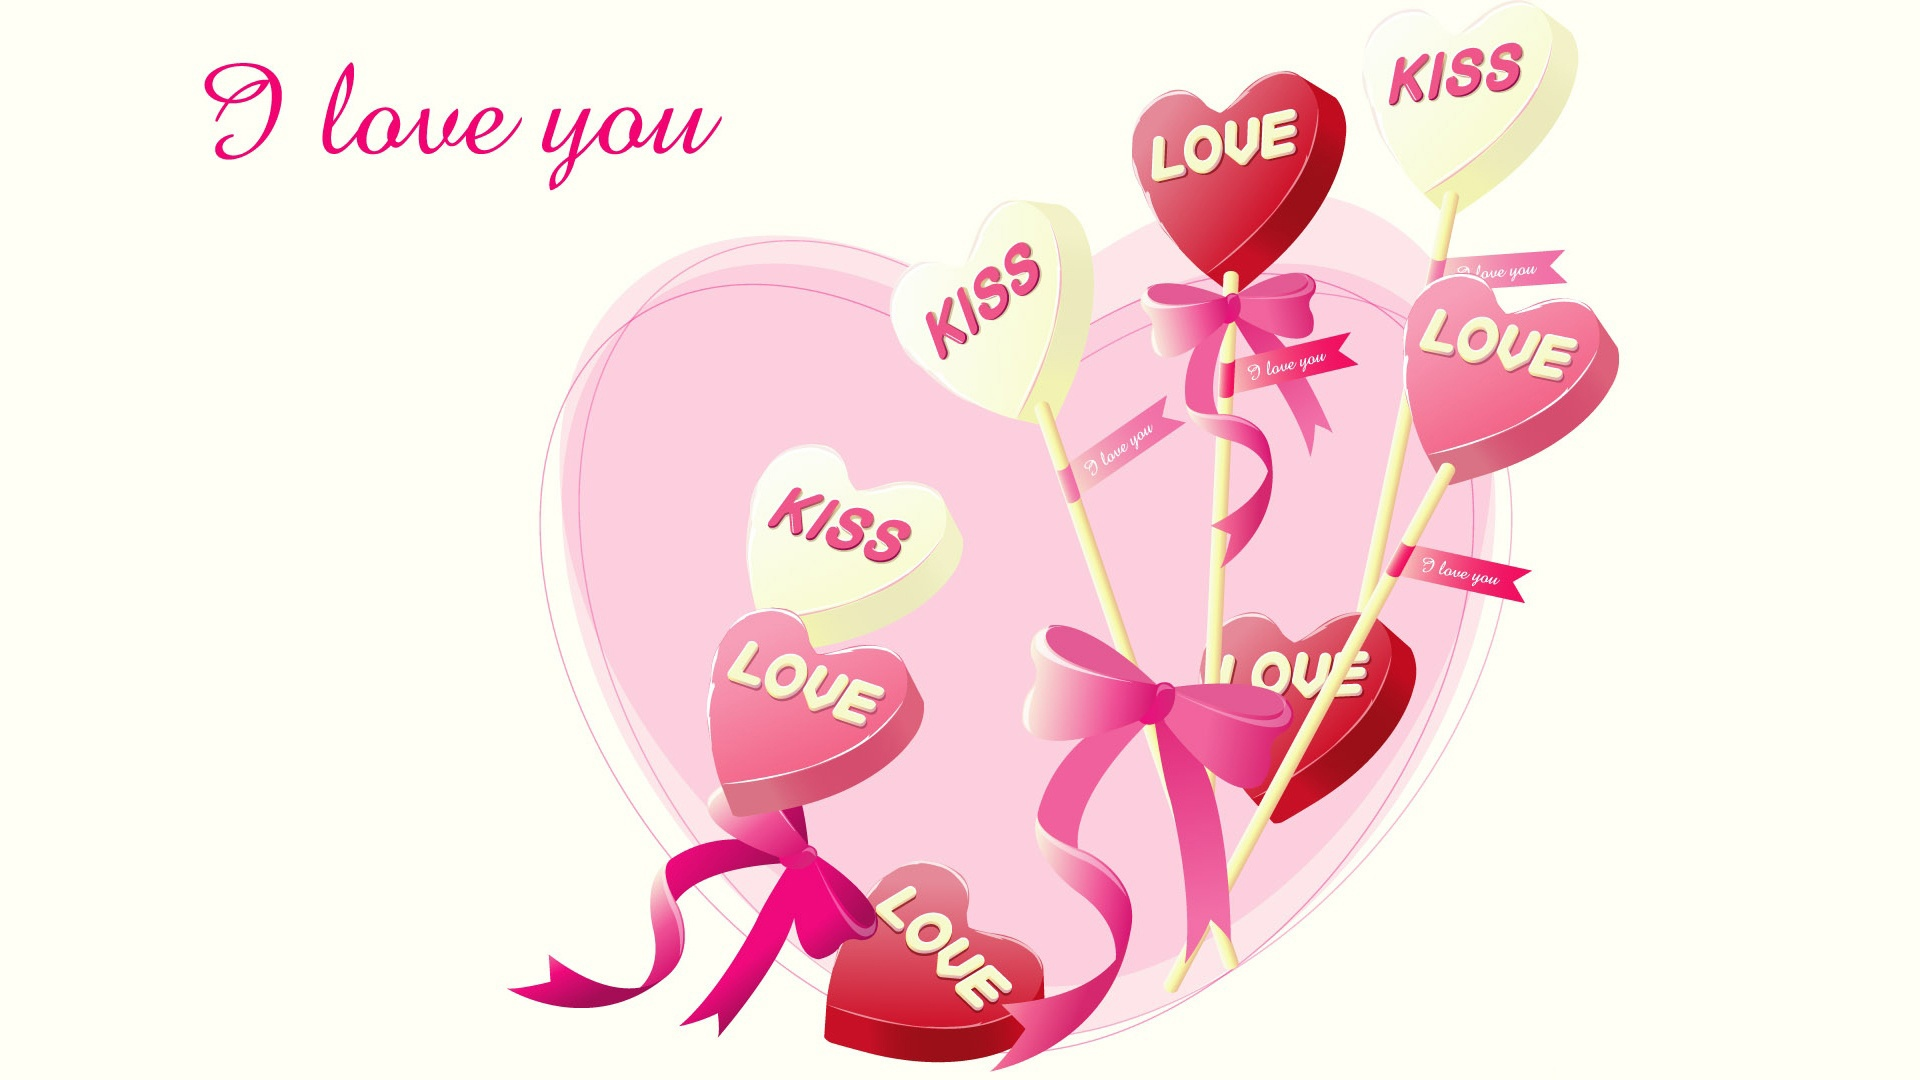 i love you wallpapers in jpg format for free download